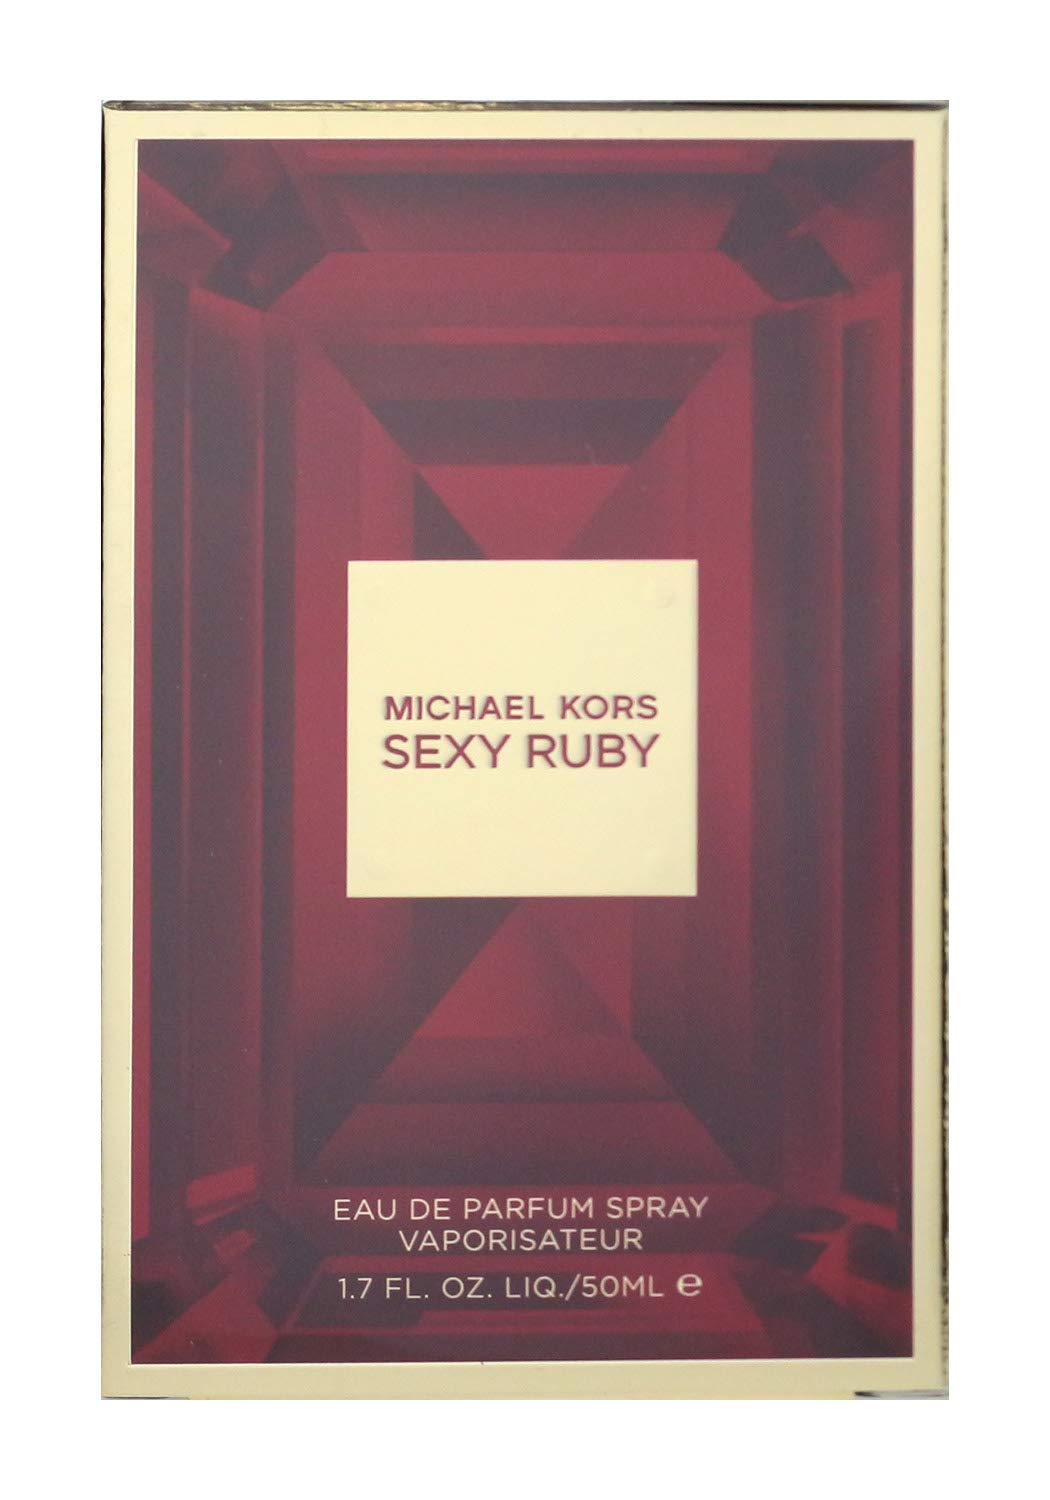 Michael Kors Sexy Ruby Eau De Parfum Spray For Women 1.0 Oz / 30 ml Brand New In Box Sealed